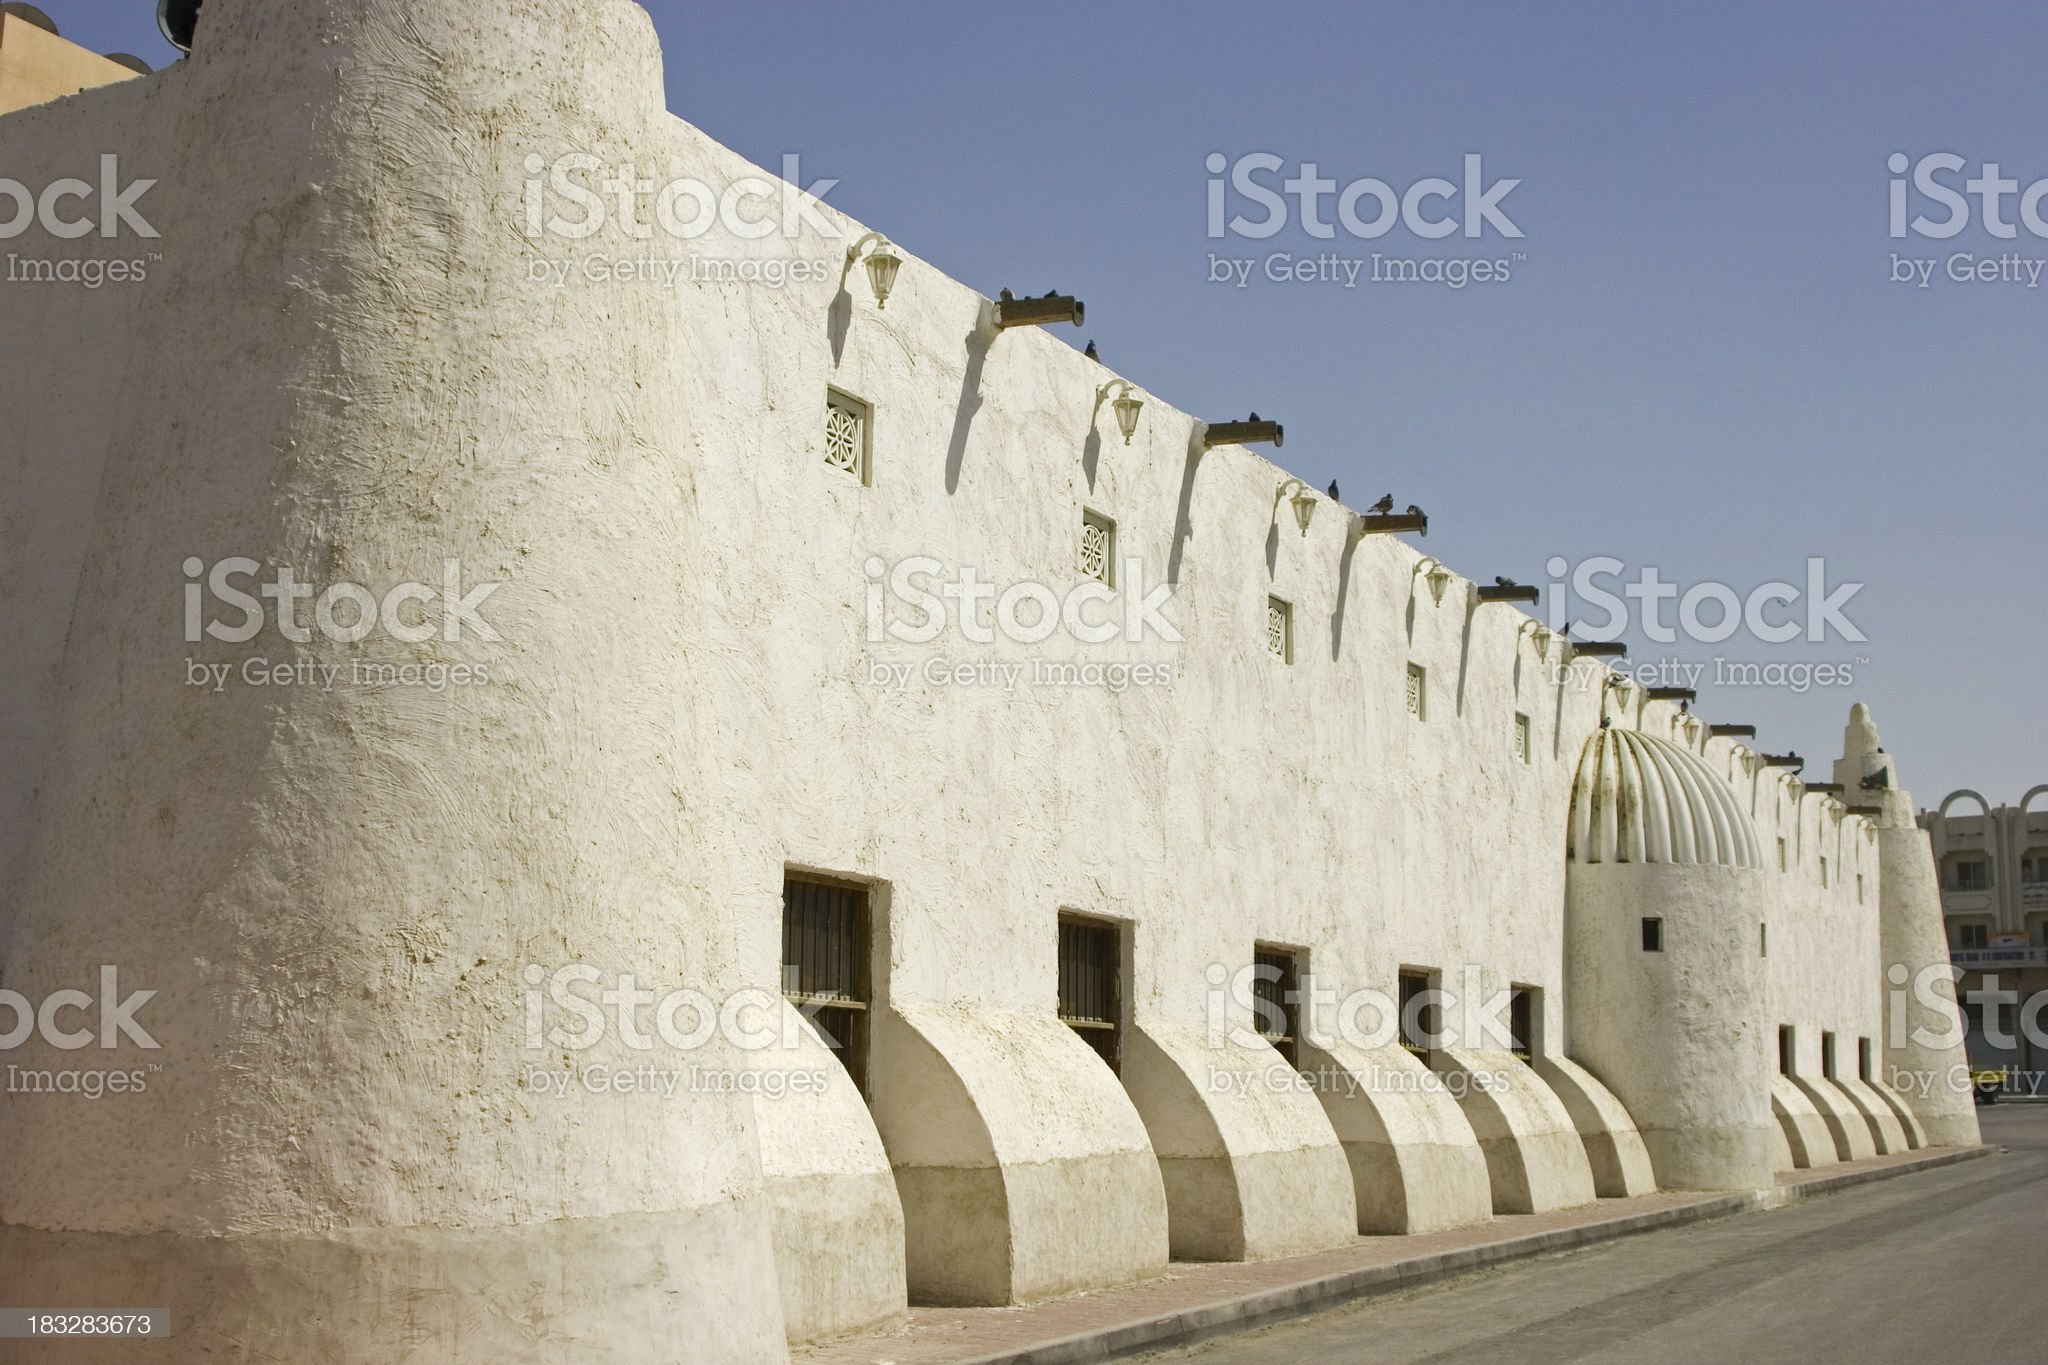 Al-Qubib Mosque in Doha Qatar royalty-free stock photo